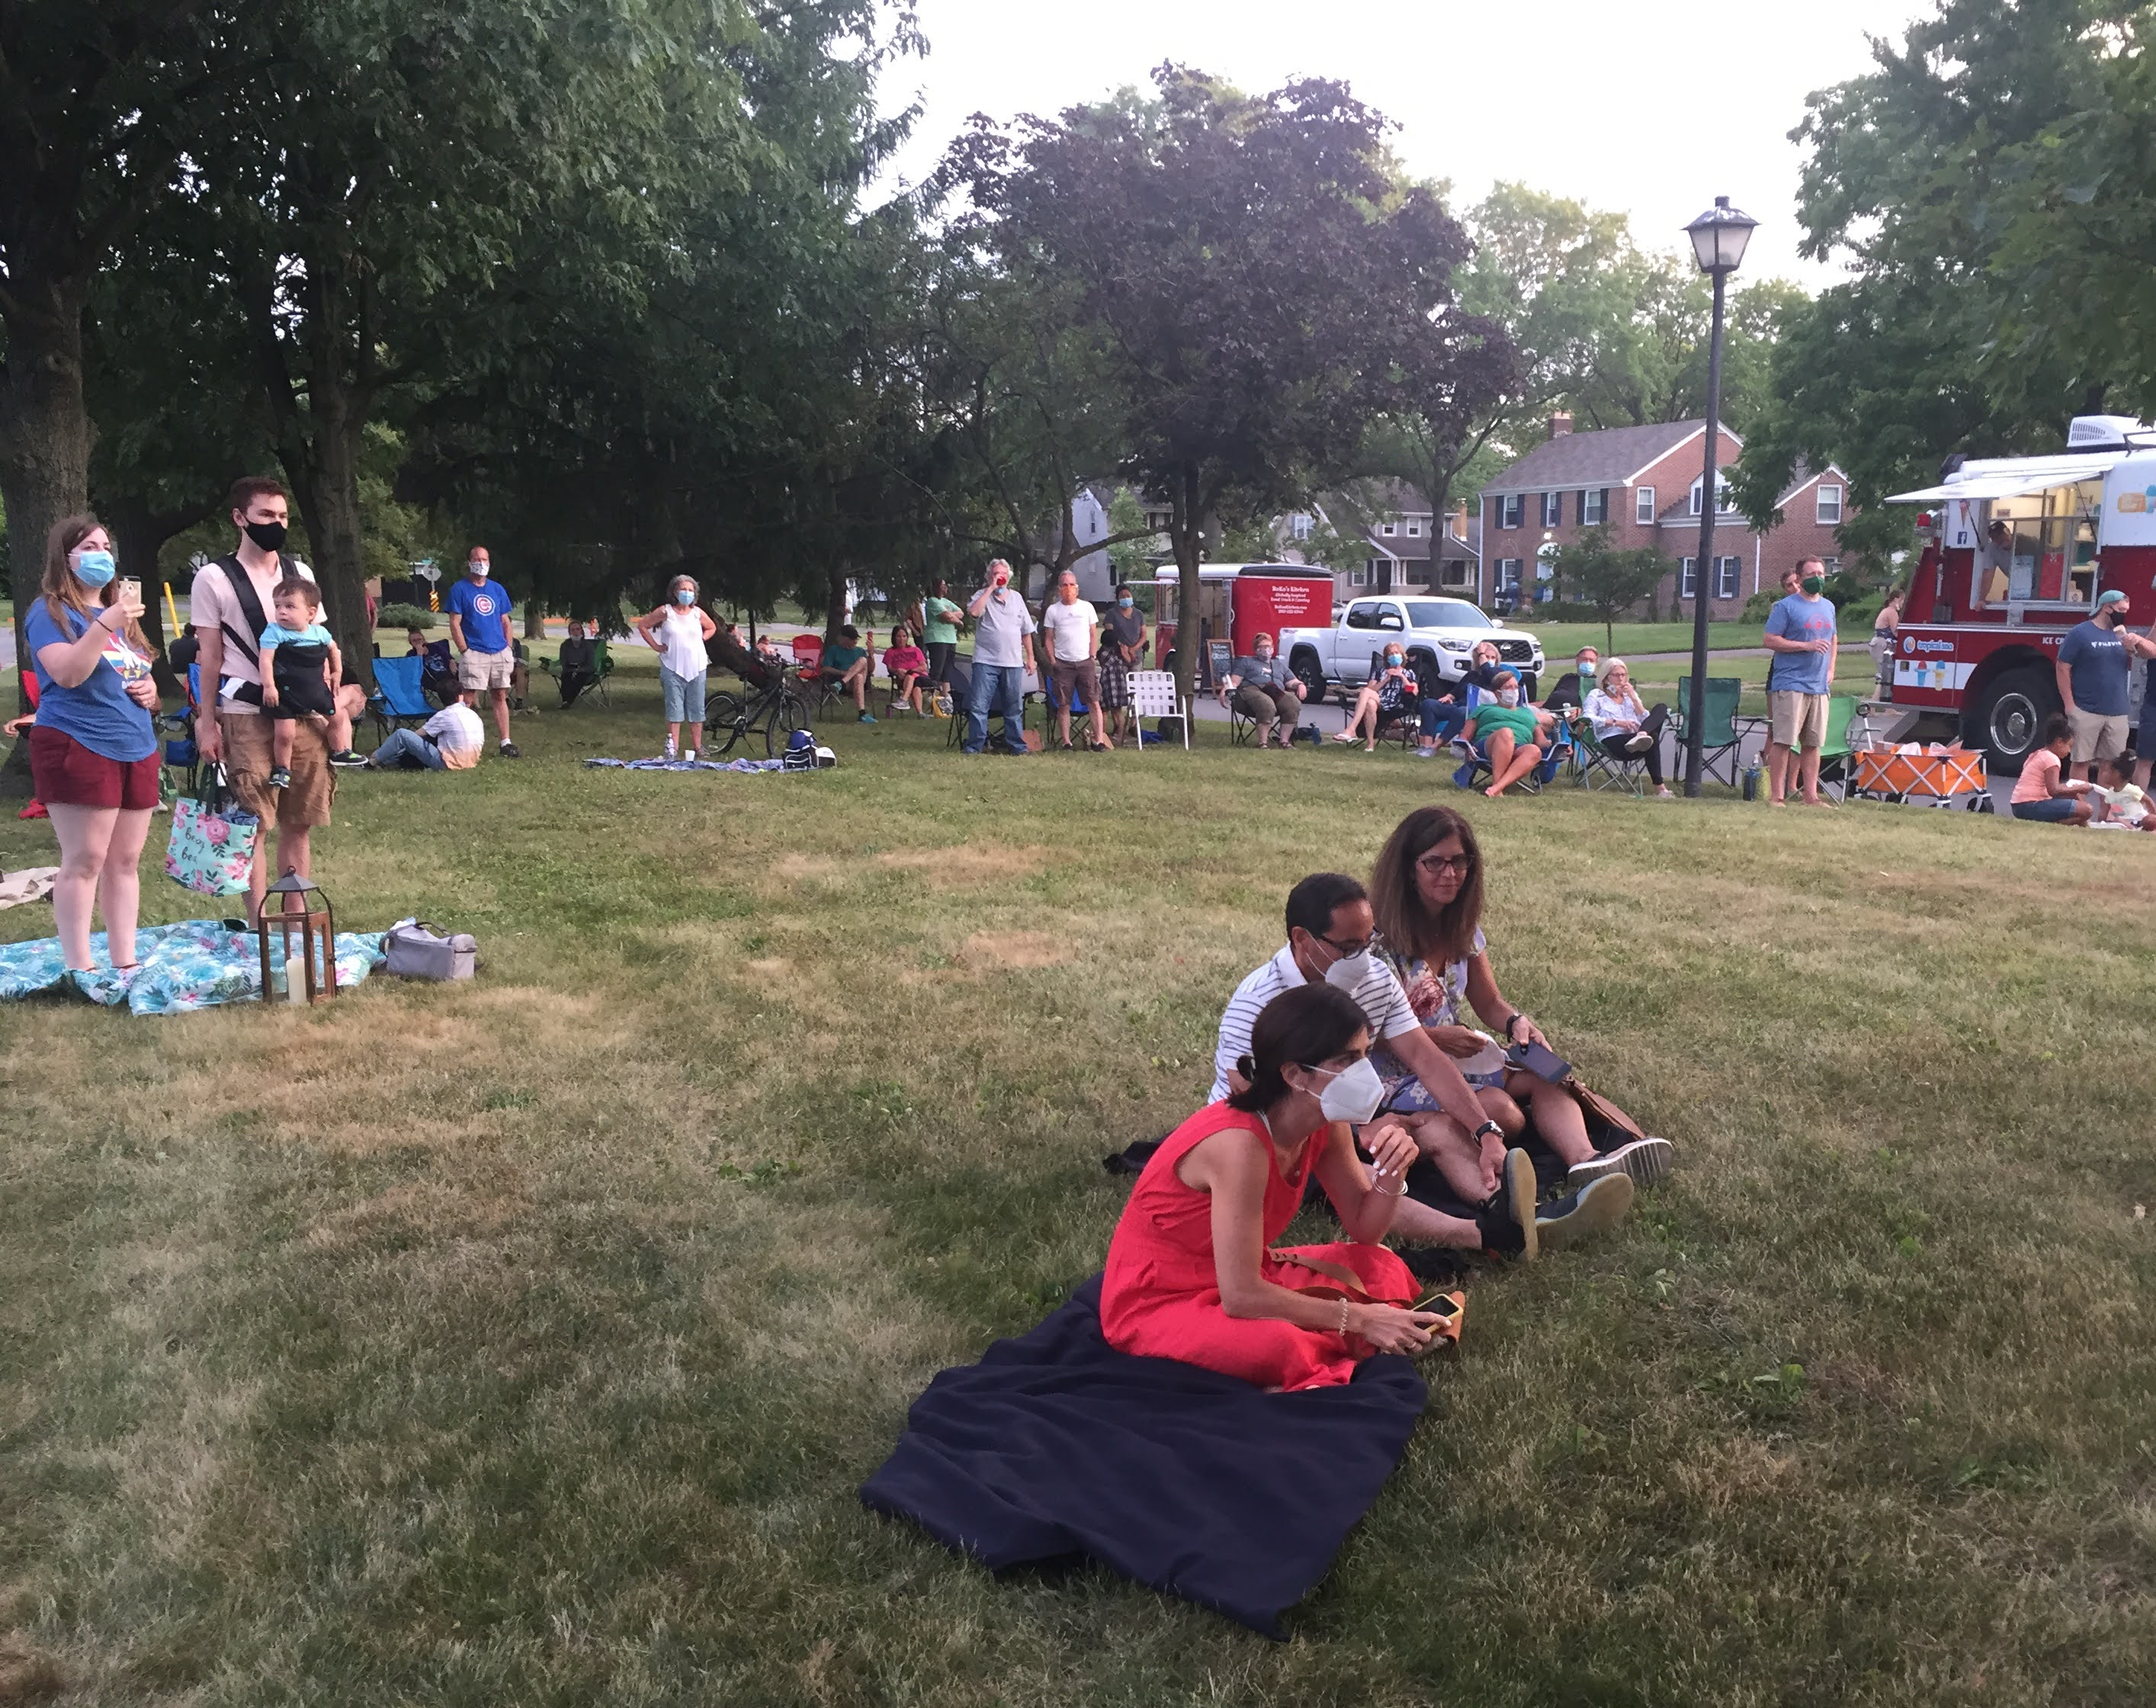 About twenty people stand and sit on a large lawn.